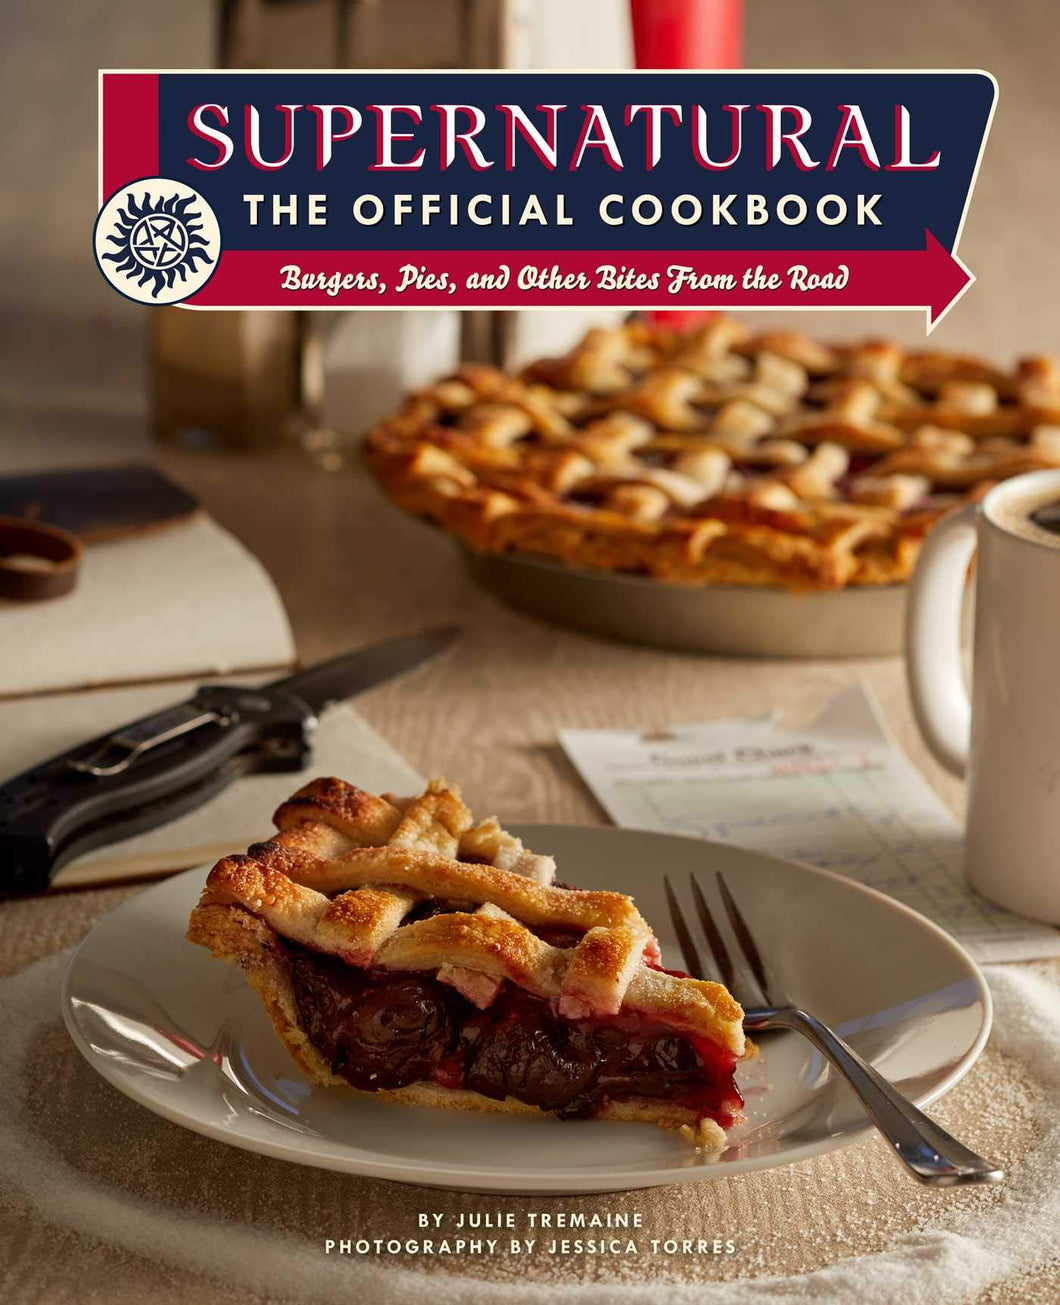 Supernatural: The Official Cookbook: Burgers, Pies, and Other Bites from the Road (Science Fiction Fantasy) - Tolerant Planet